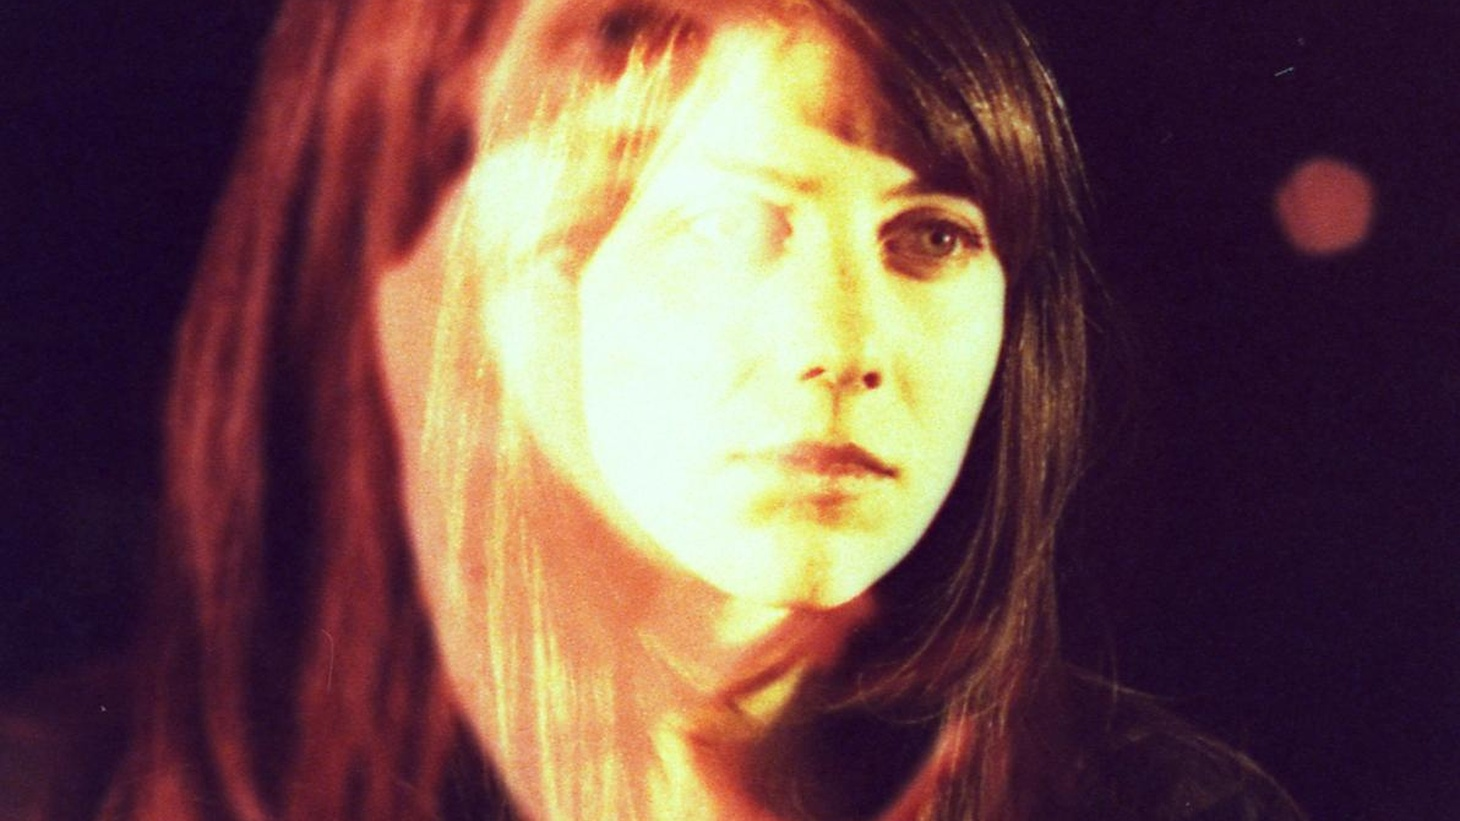 Julia Holter has always had a flair for not only drama, but also the dramatic. On Loud City Song, she looks to the 1958 musical film Gigi for her third album in 3 years.